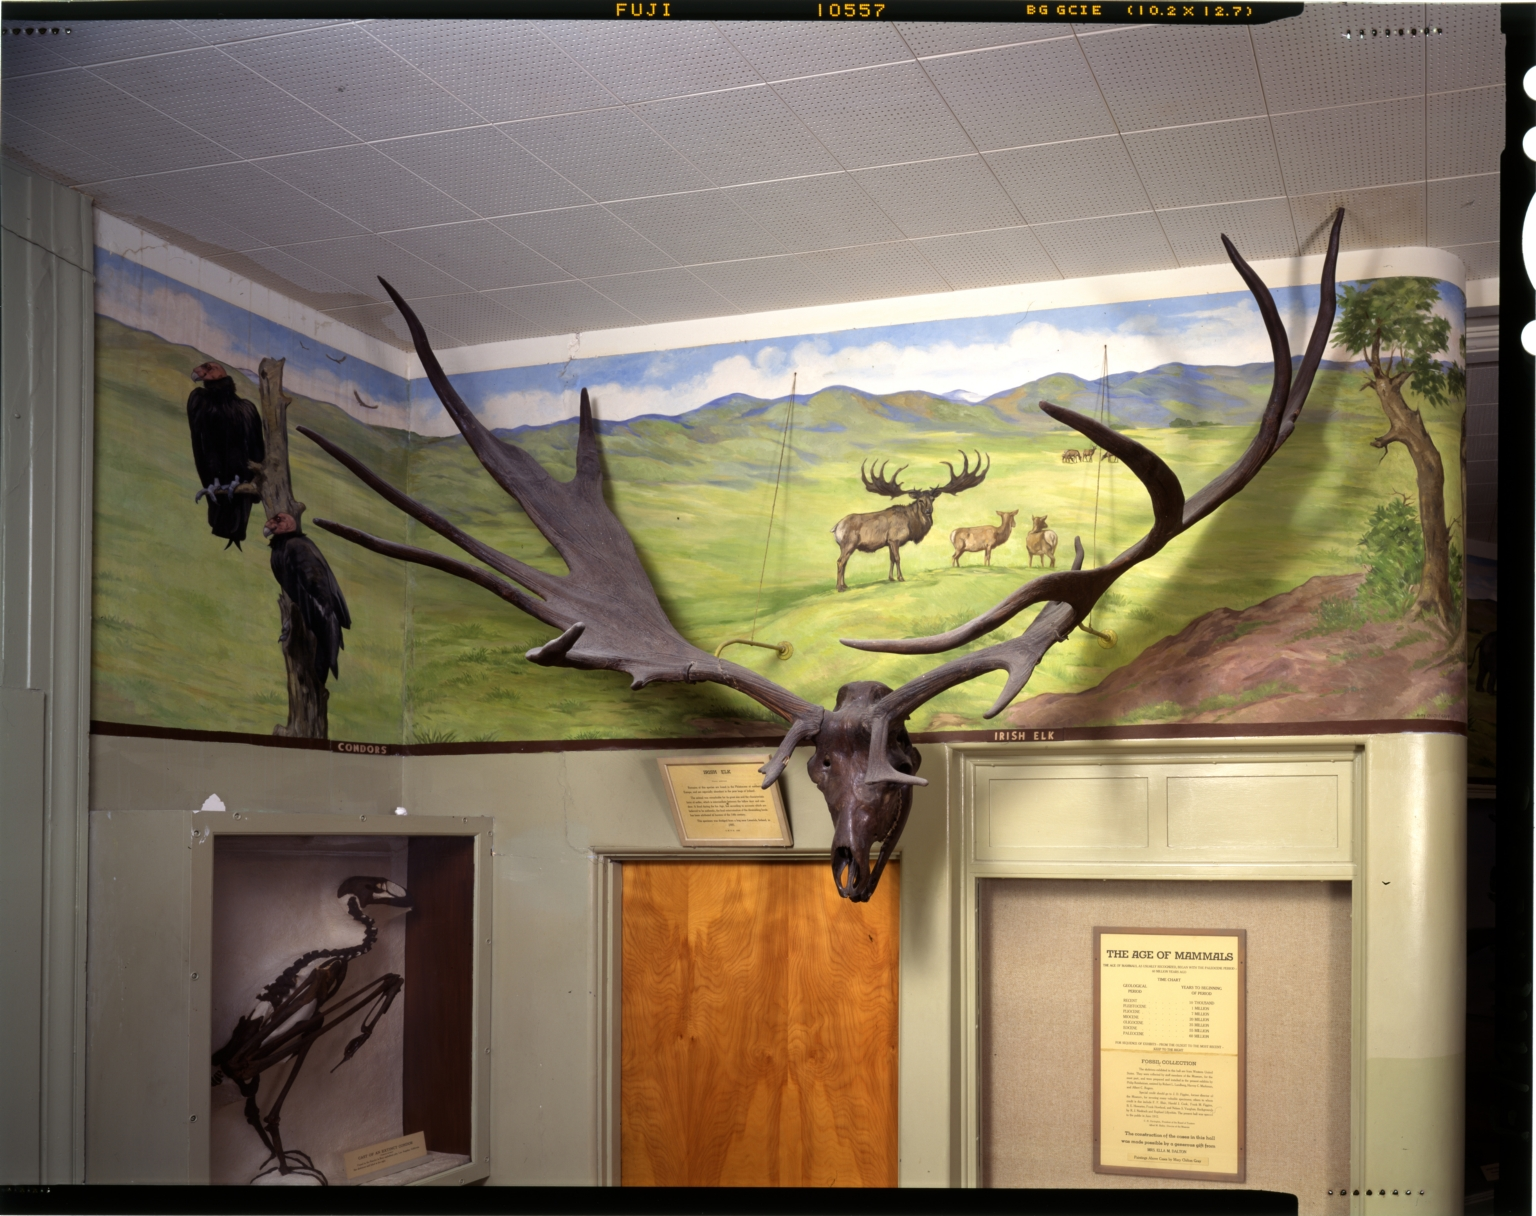 Old Fossil Mammal Hall Mural